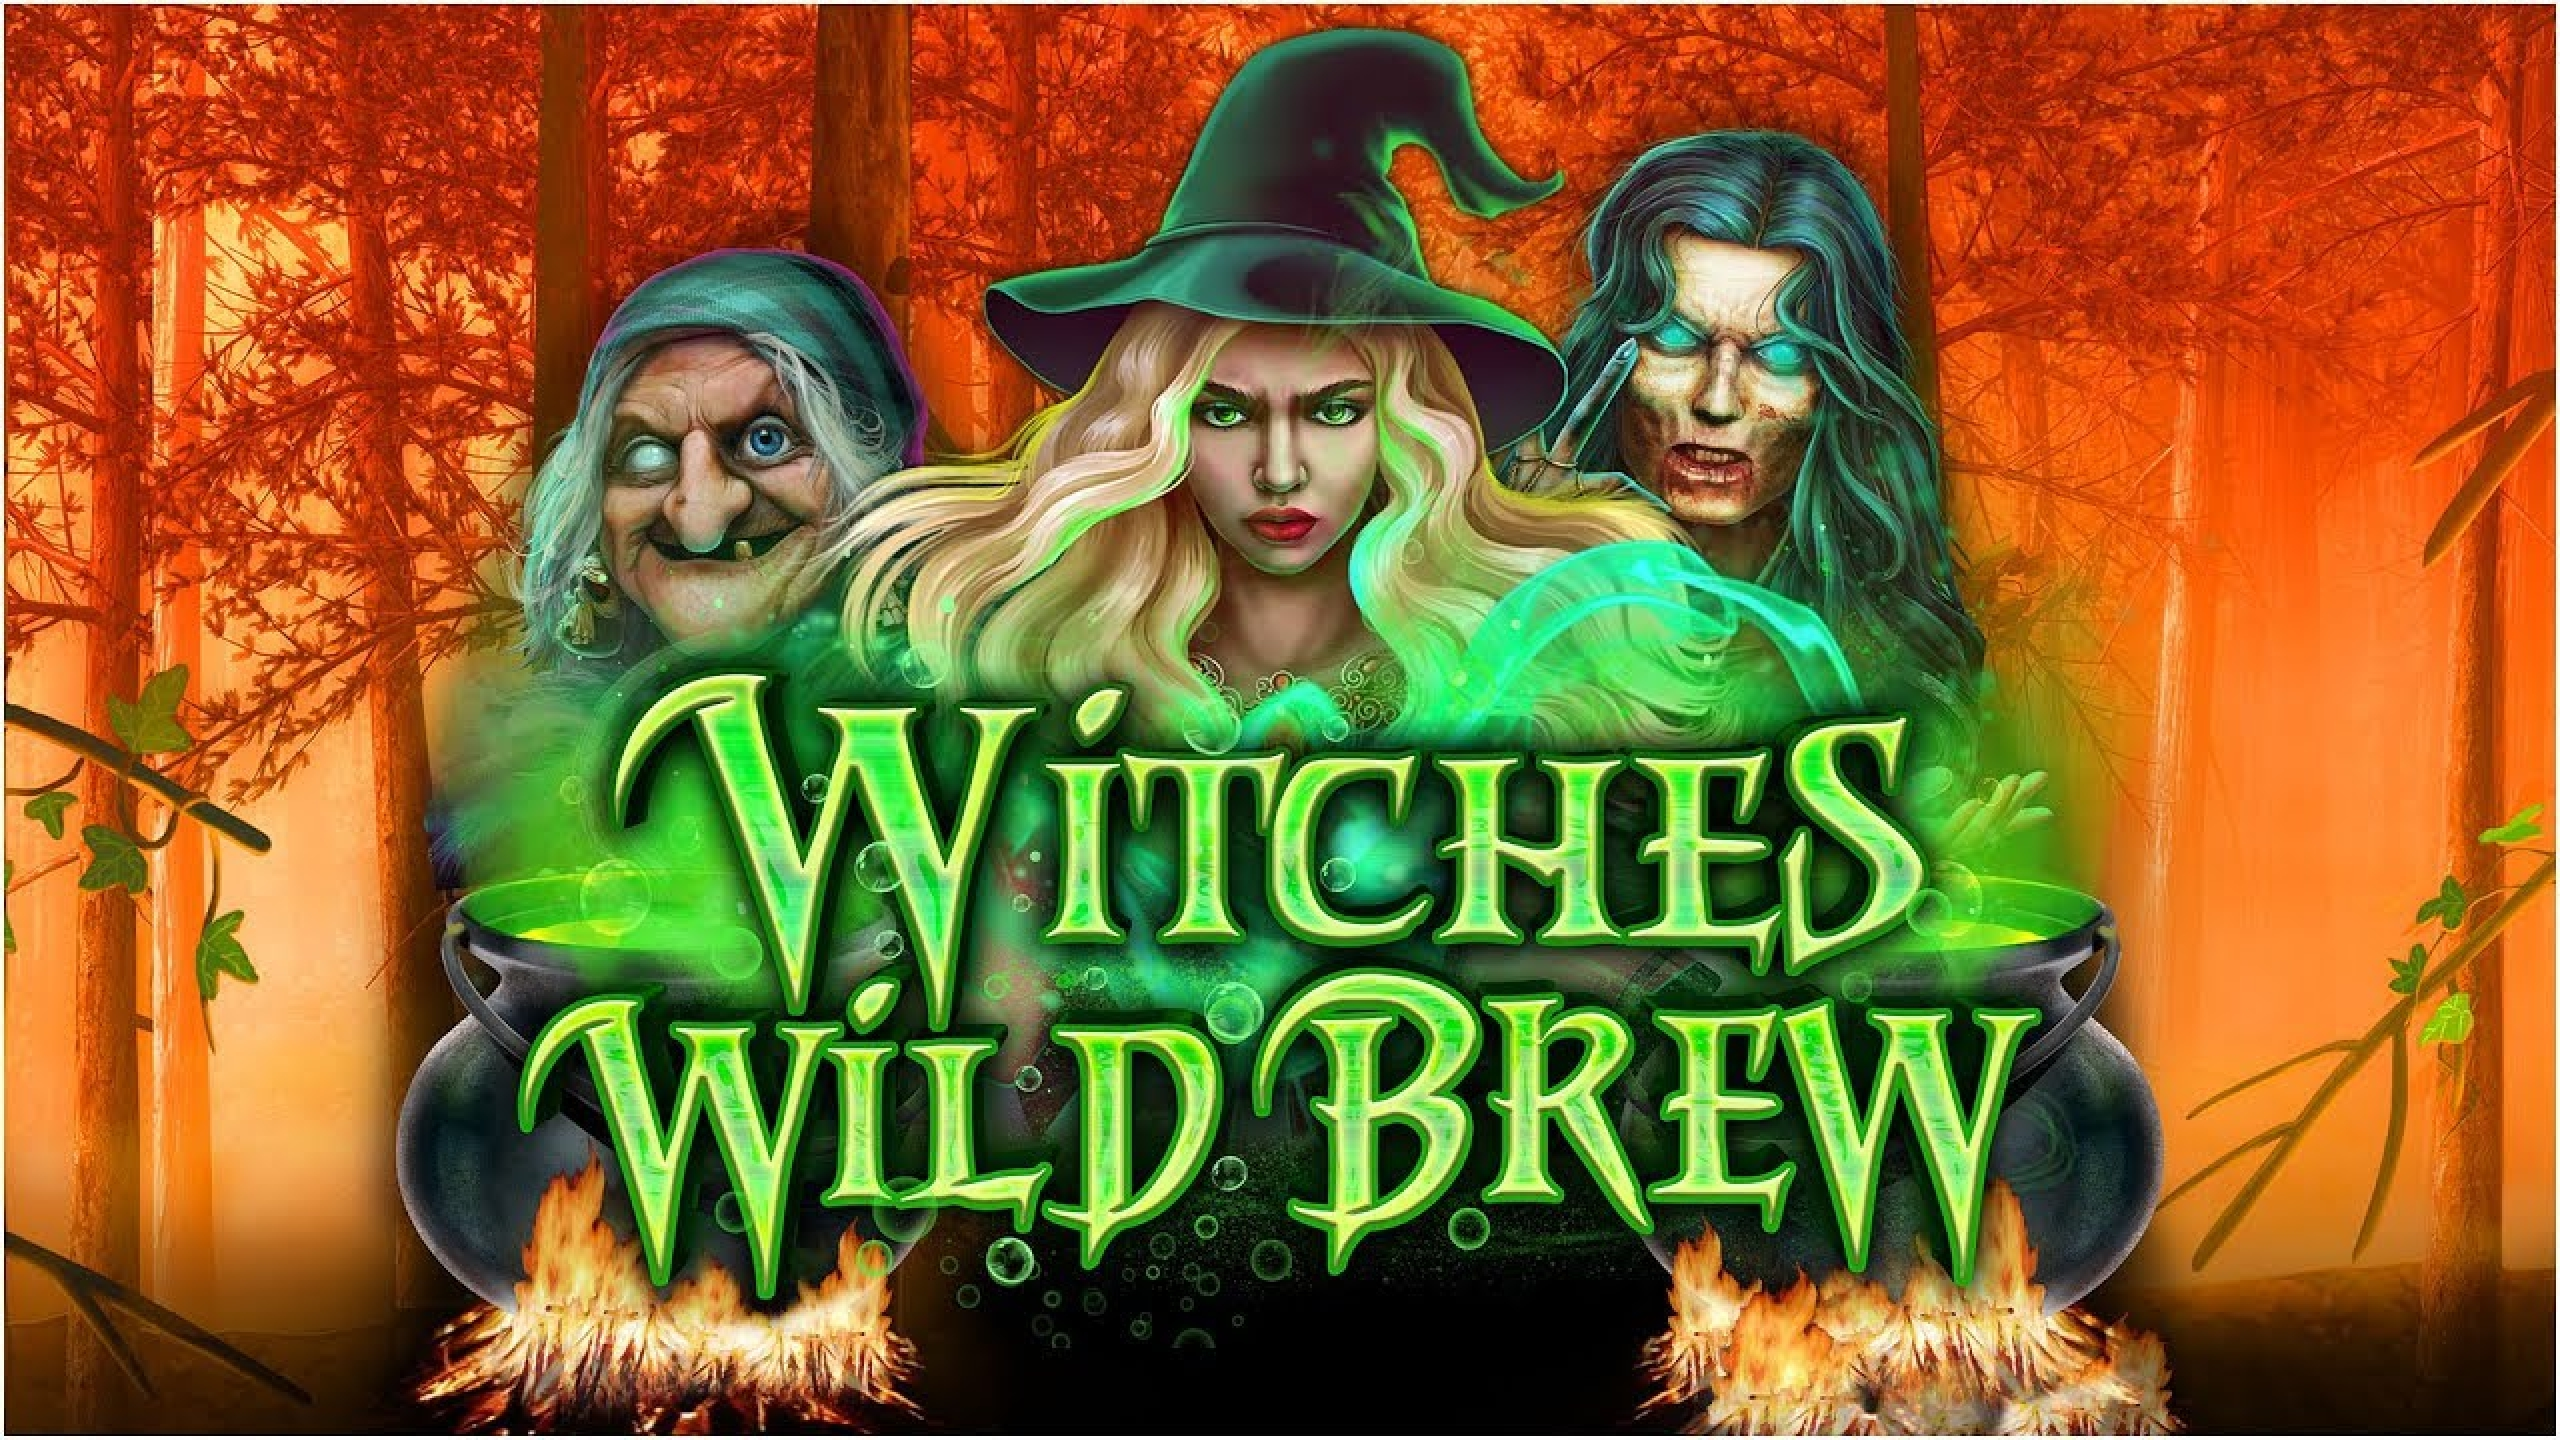 The Witches Wild Brew Online Slot Demo Game by Booming Games